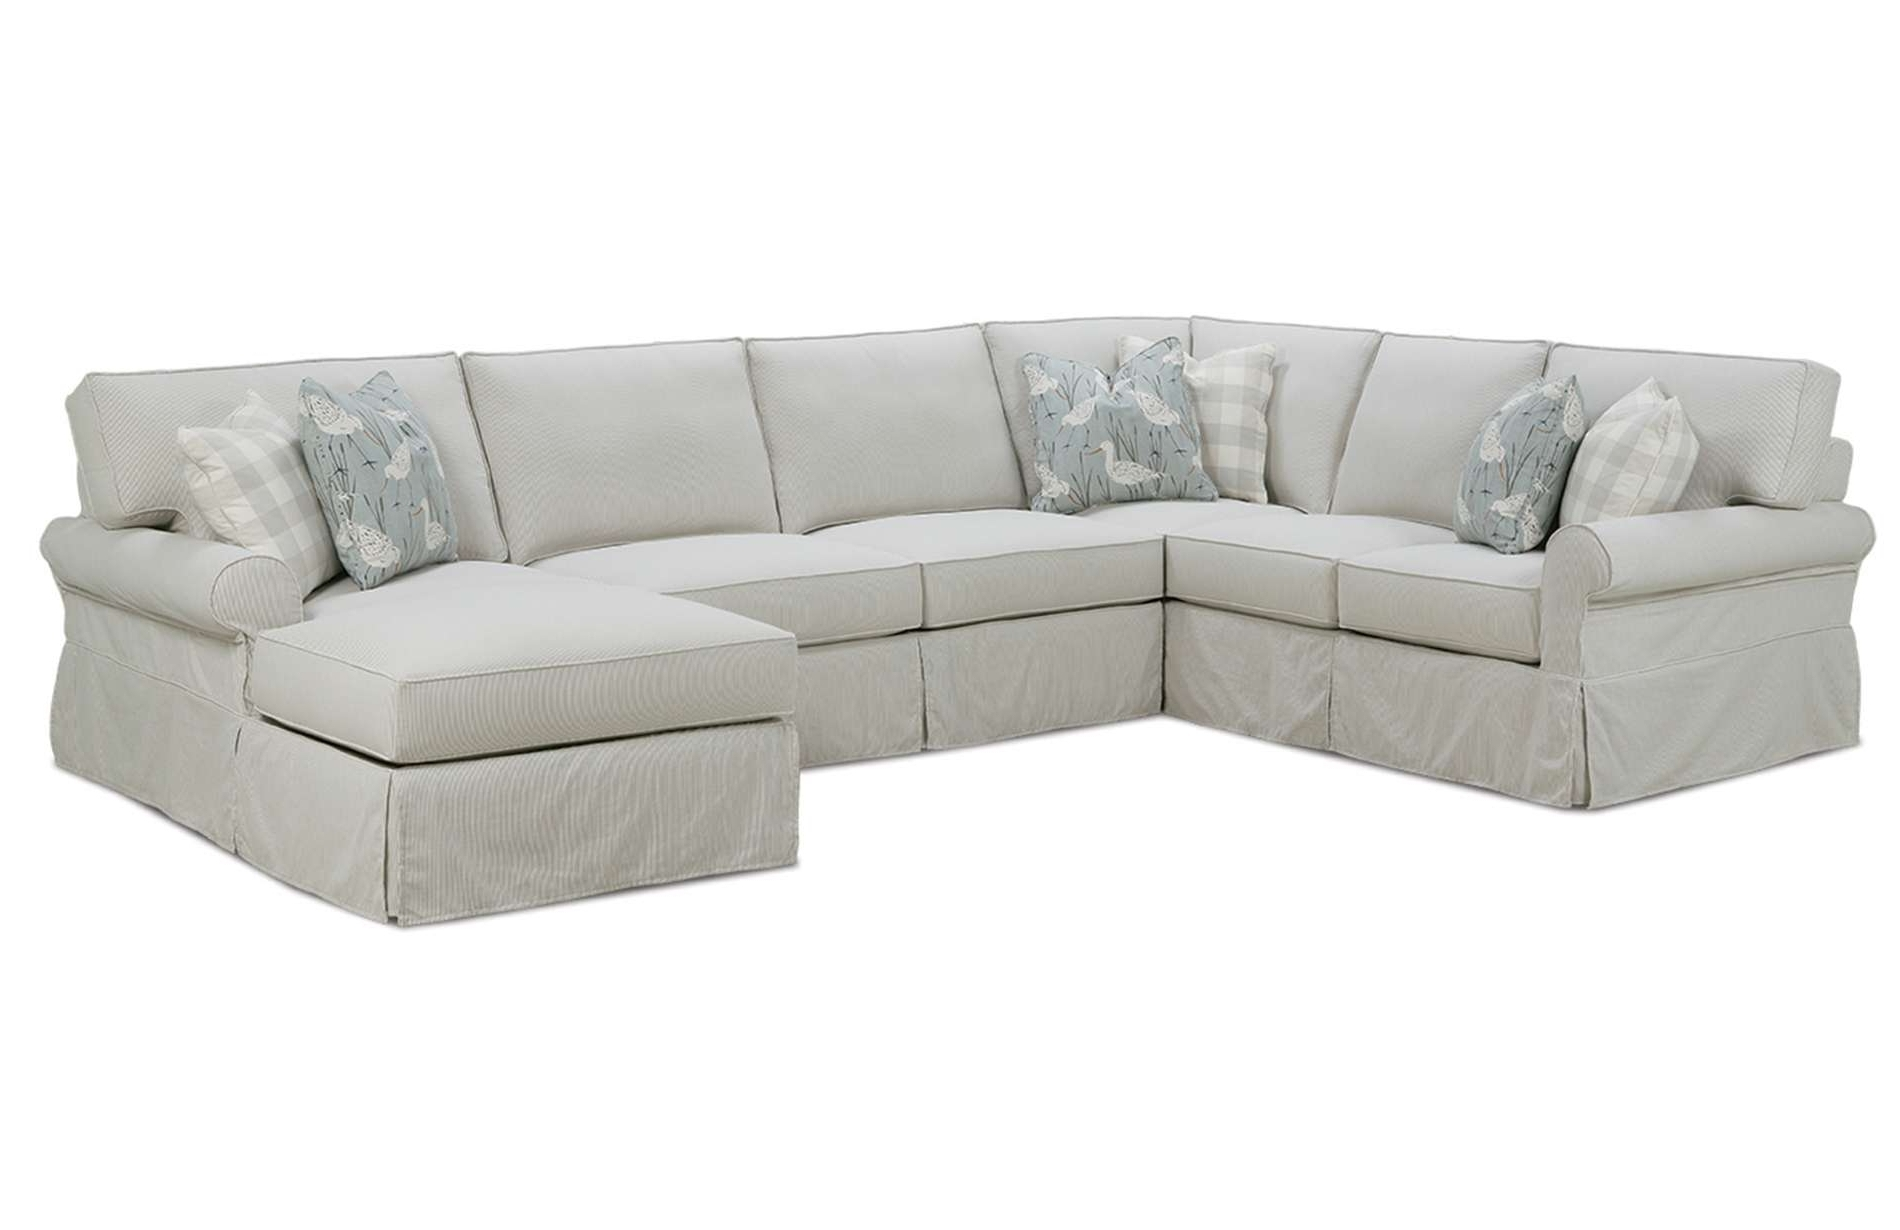 Fashionable Sectional Sofas At Chicago In Picture 8 Of 34 – Sectional Sofas Chicago Lovely Custom Sofa (View 3 of 20)